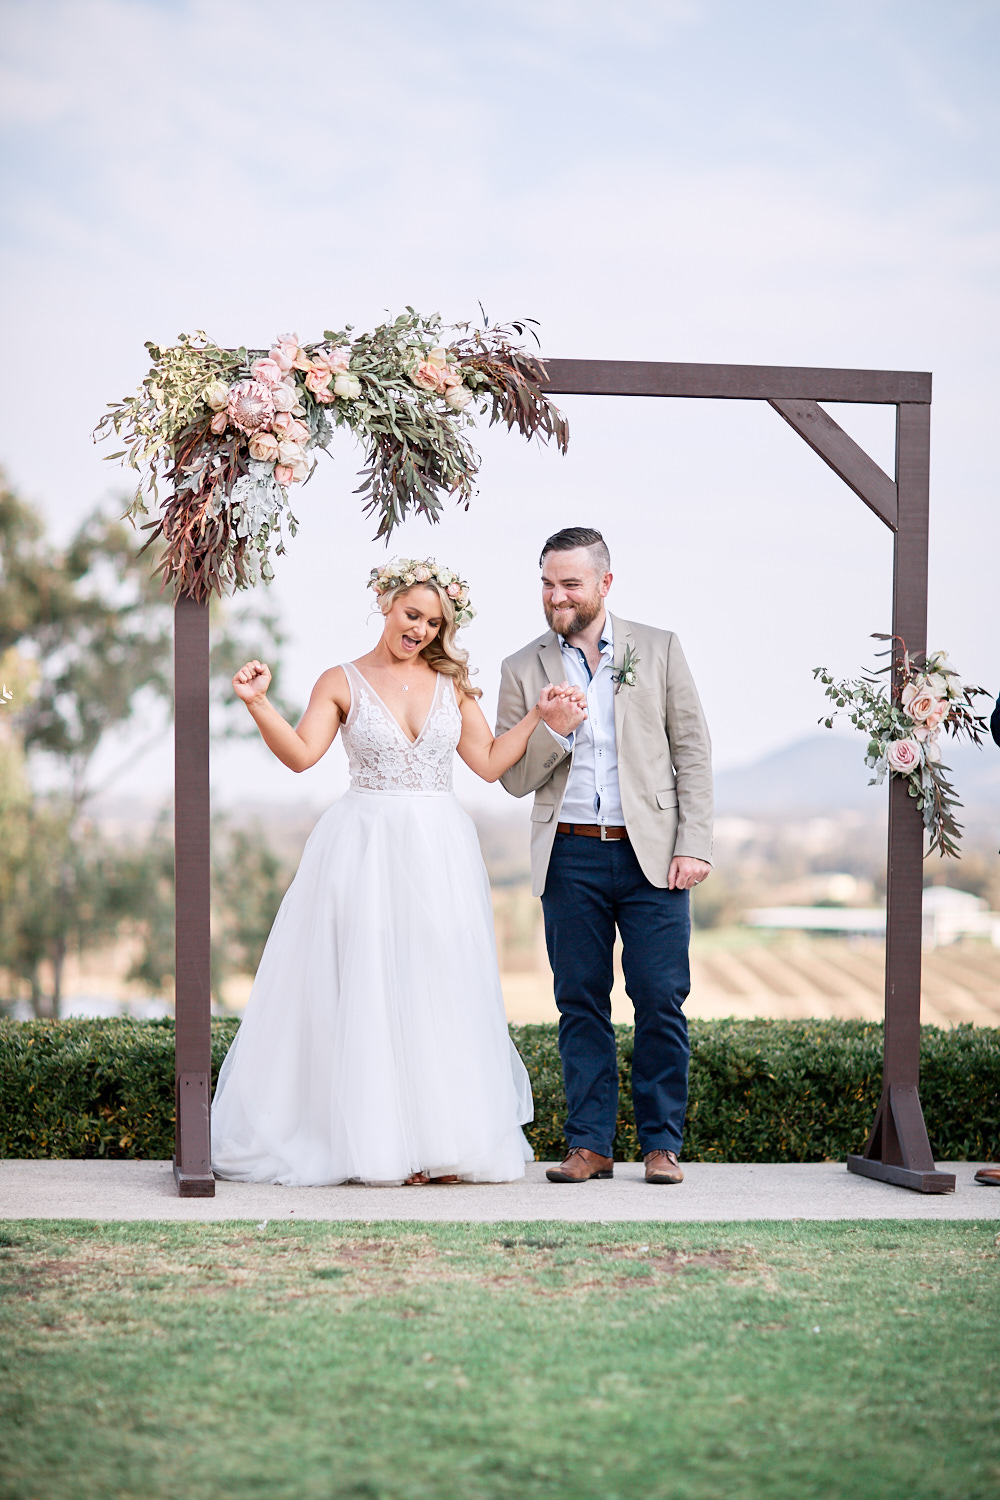 Bride and groom holding hands celebrating under arbor at Estate Tuscany Pokolbin in the Hunter Valley by wedding photographer Joshua Witheford